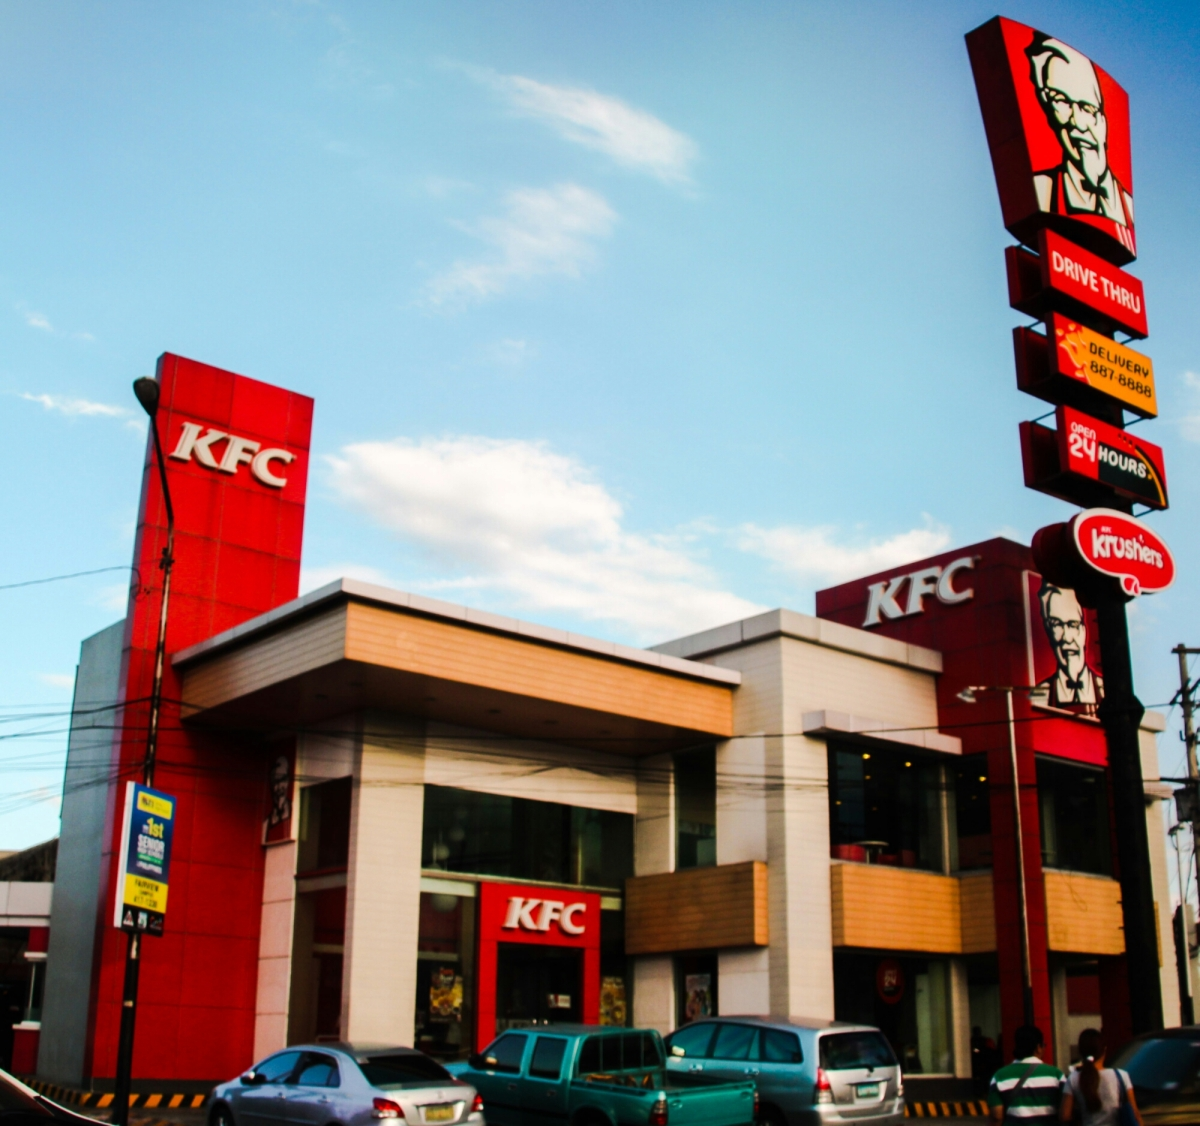 Kentucky Fried Chicken... In the Philippines